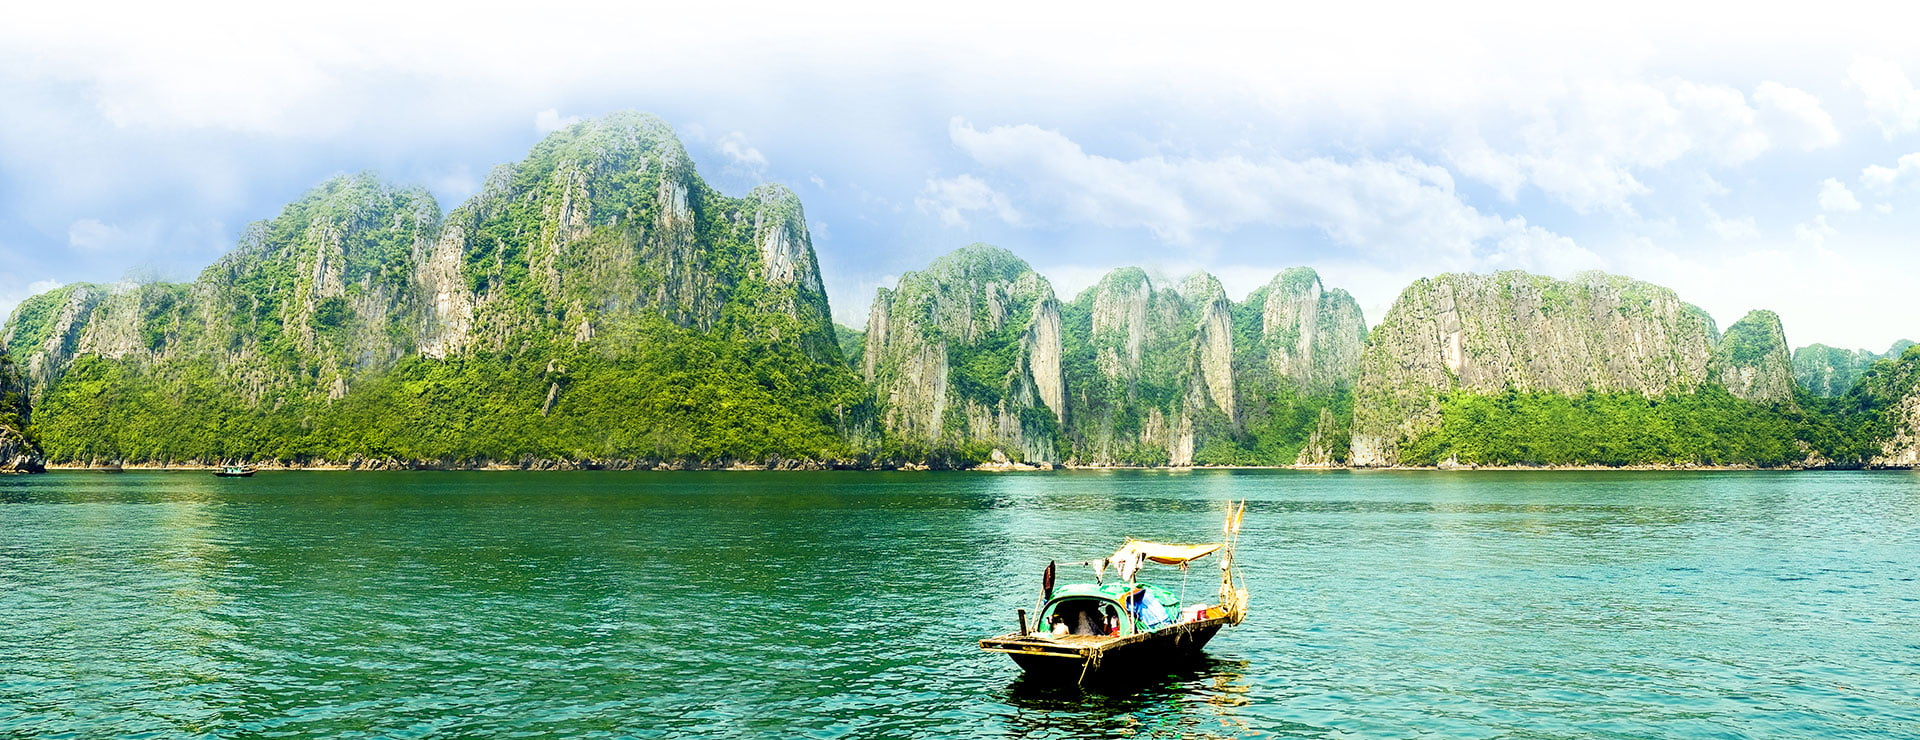 ICP Picks: Top destinations for Christmas and New Year trip in Vietnam